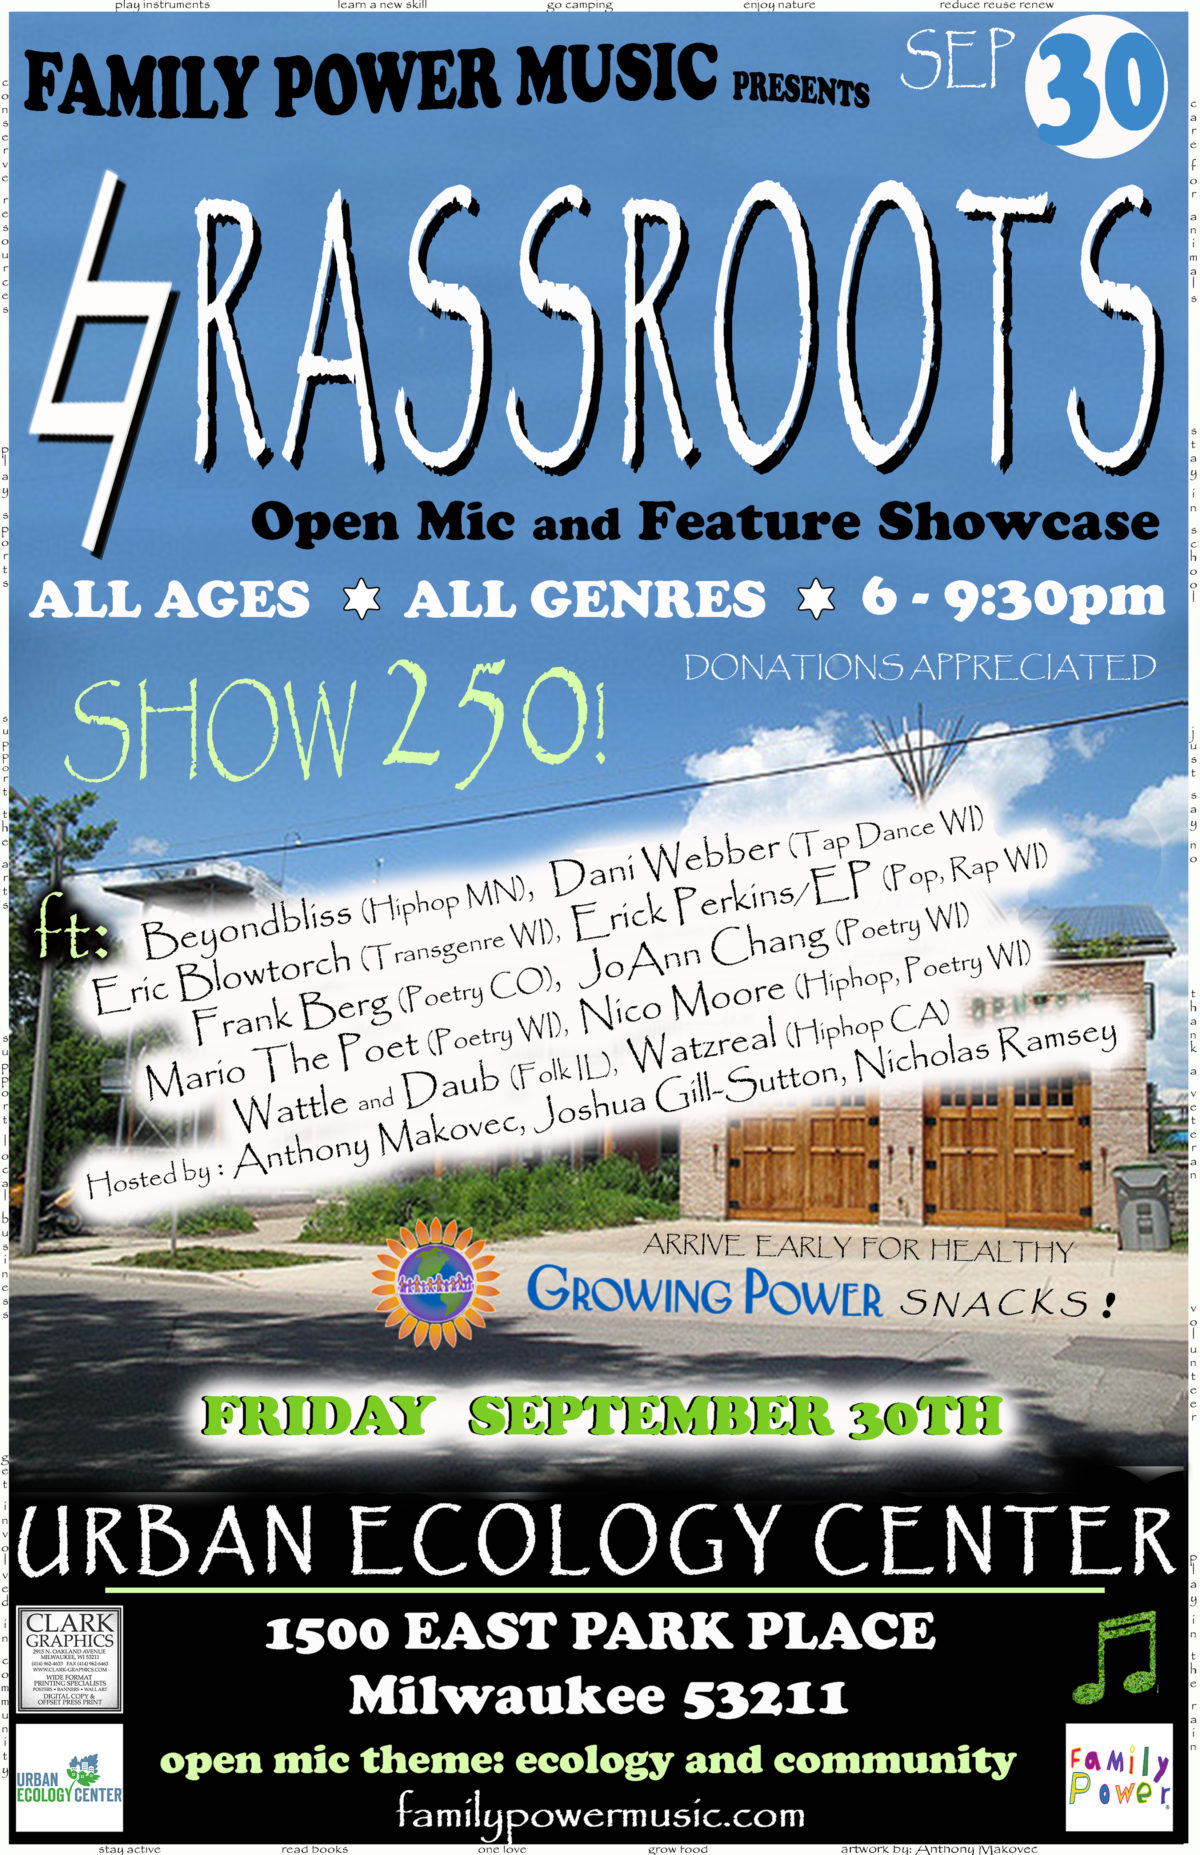 Friday 9/30/16 @ Urban Ecology Center Riverside Park – Grassroots 250th SHOW!